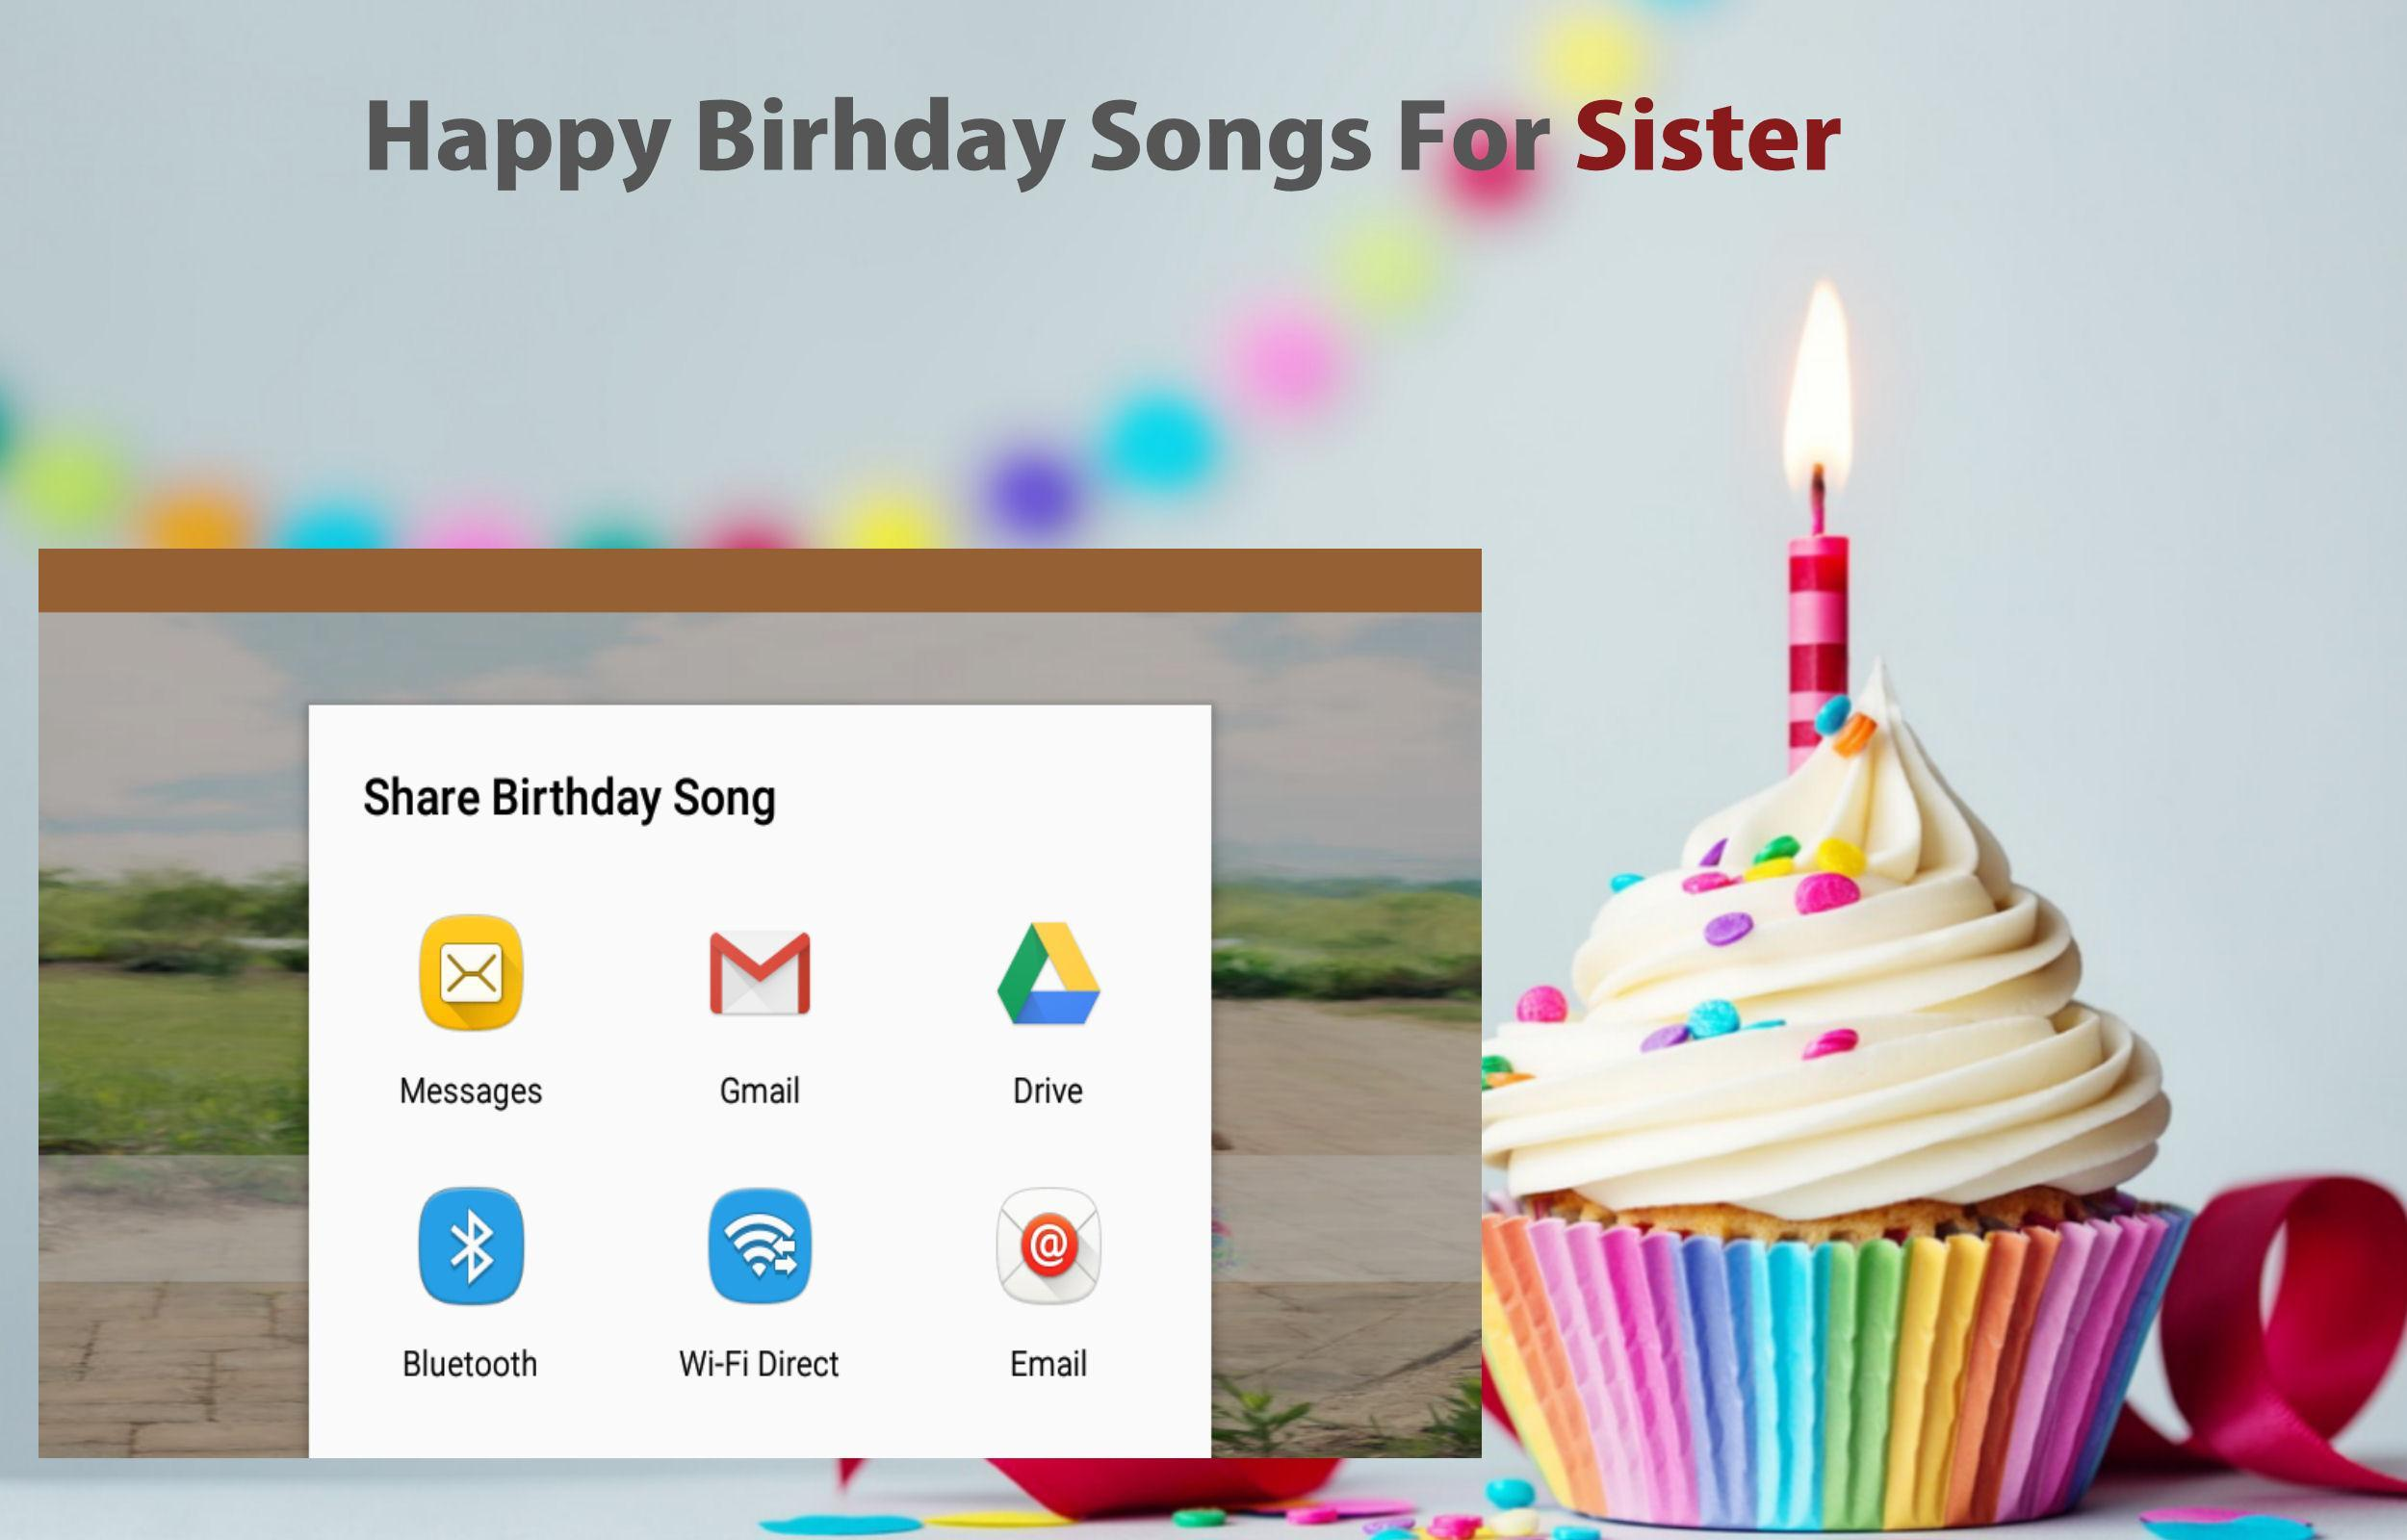 Happy Birthday song for Sister for Android - APK Download